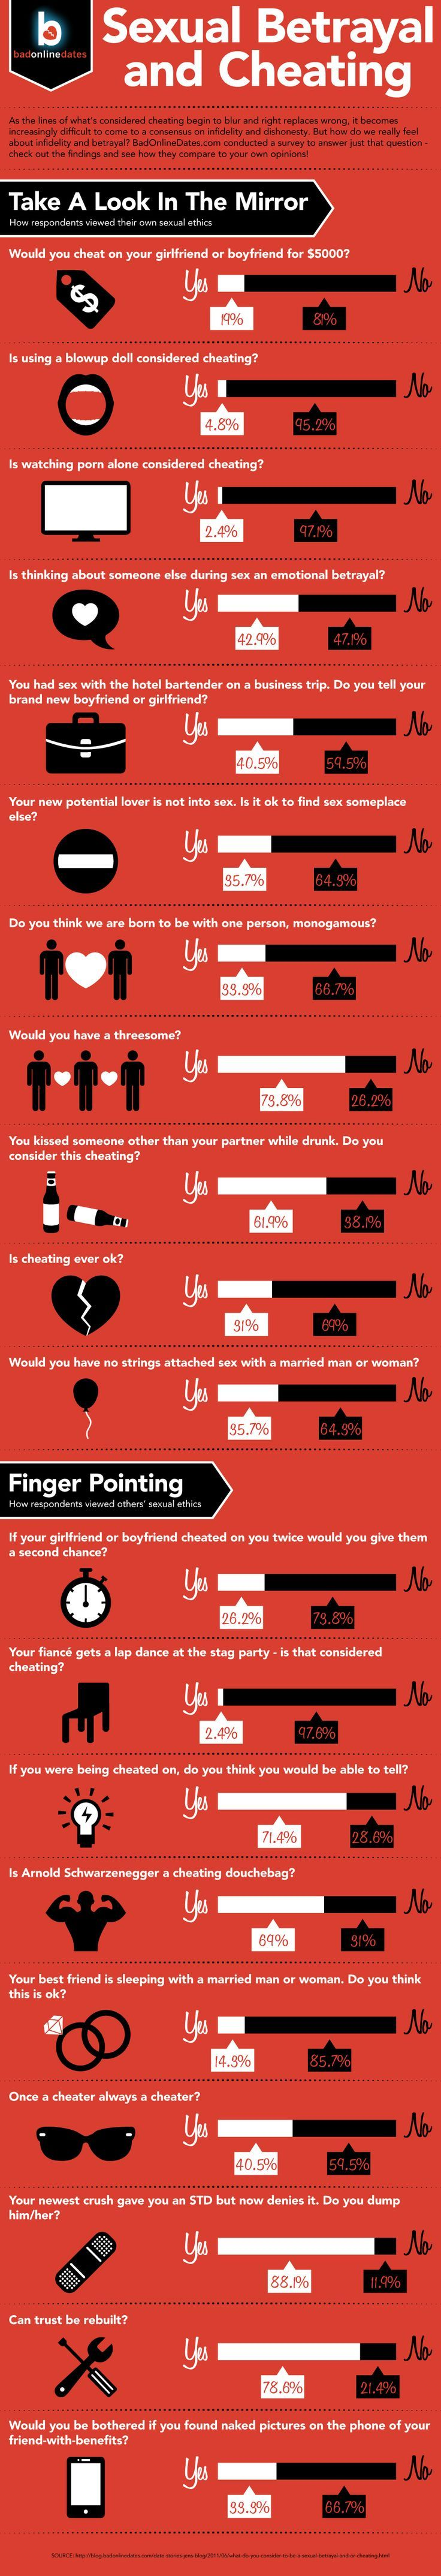 Psychology infographic and charts   Sexual Betrayal and Cheating – RelationsTips   Infographic   Description  Sexual Betrayal and Cheating.  Text lovesmstext to 41242 to get more relationship tips.    - #Psychologyinfographics